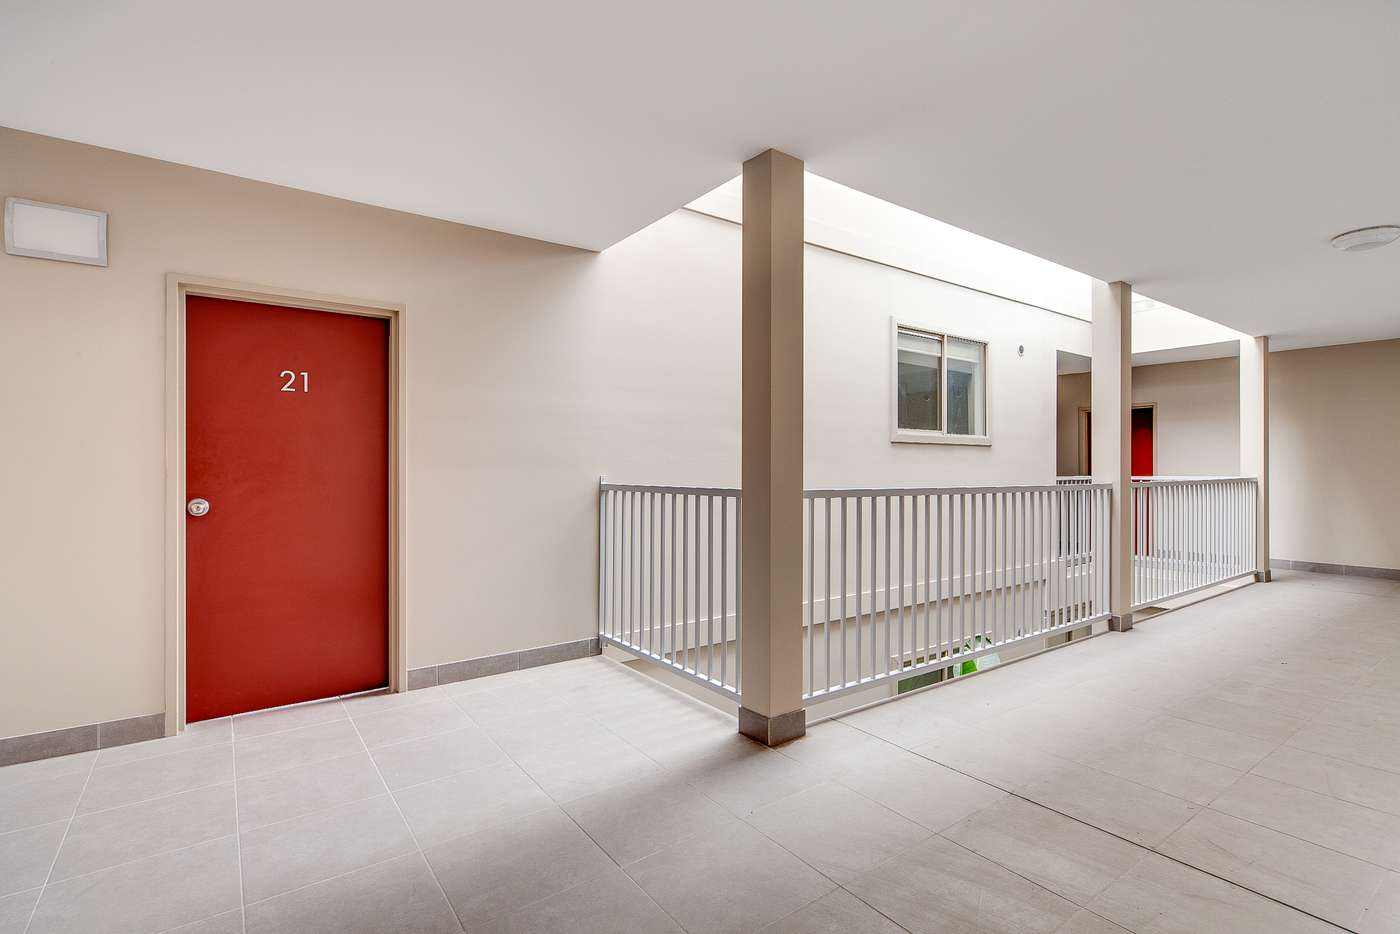 Sixth view of Homely apartment listing, 21/473 Princes Highway, Noble Park VIC 3174